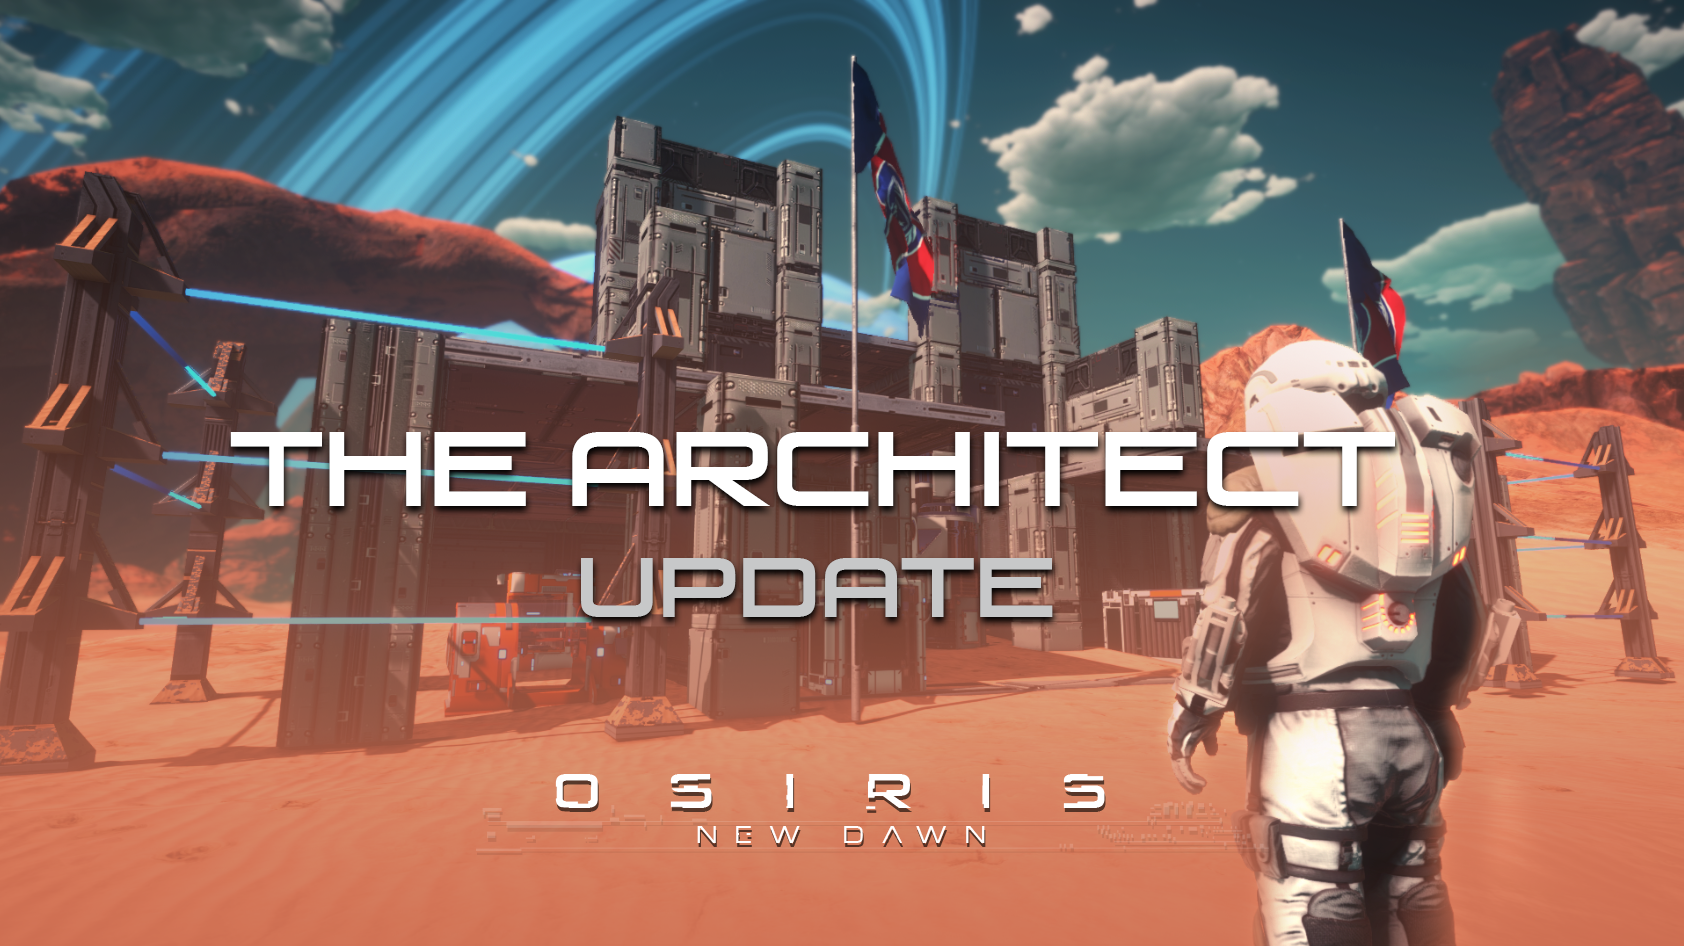 osiris new dawn the architect update available now